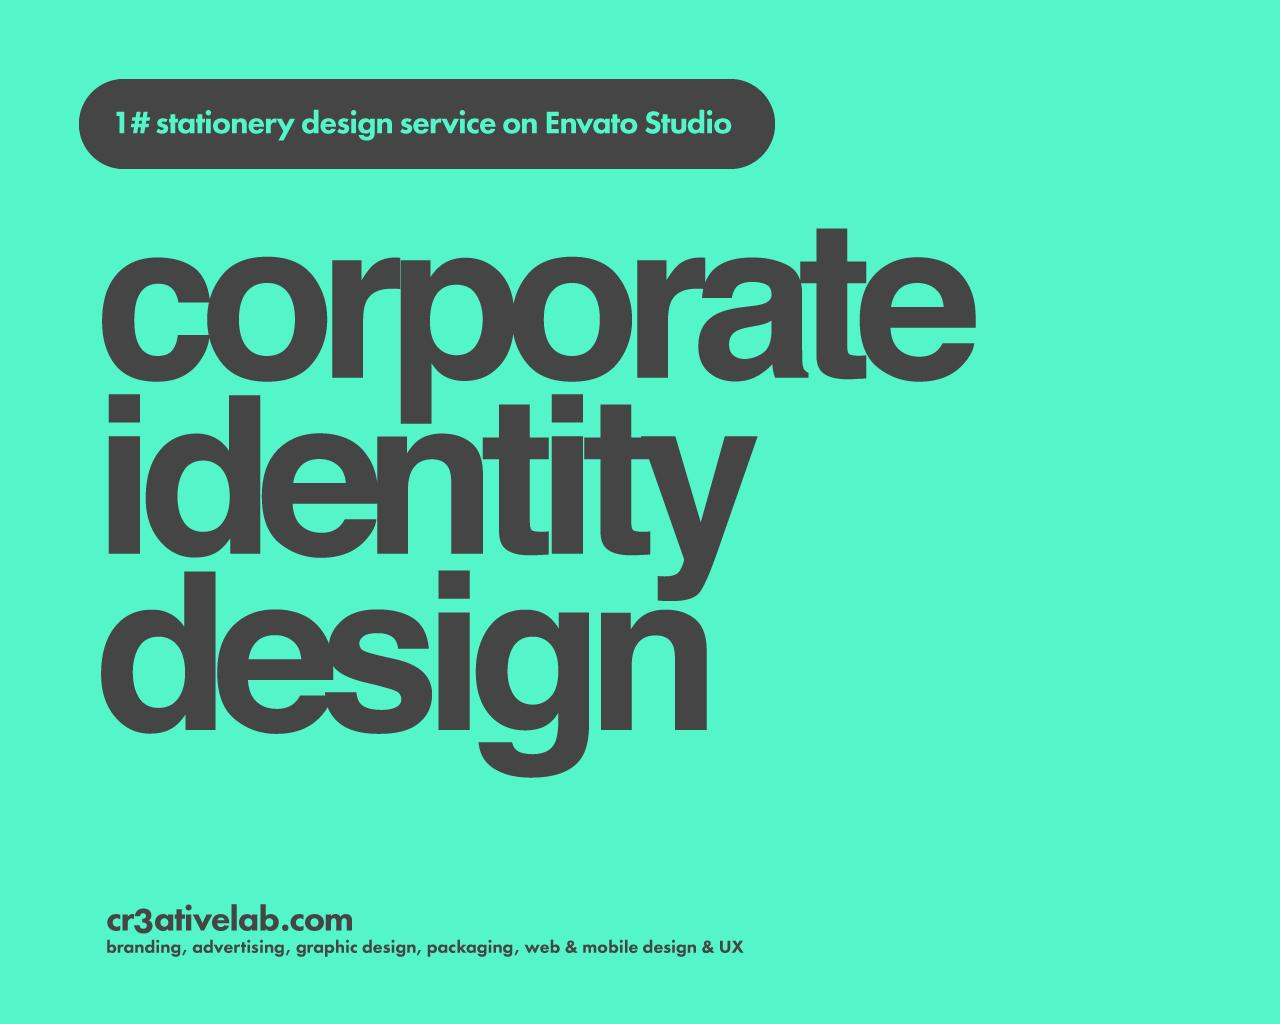 Professional Corporate Identity & Stationery Design by cr3ativelab - 103010